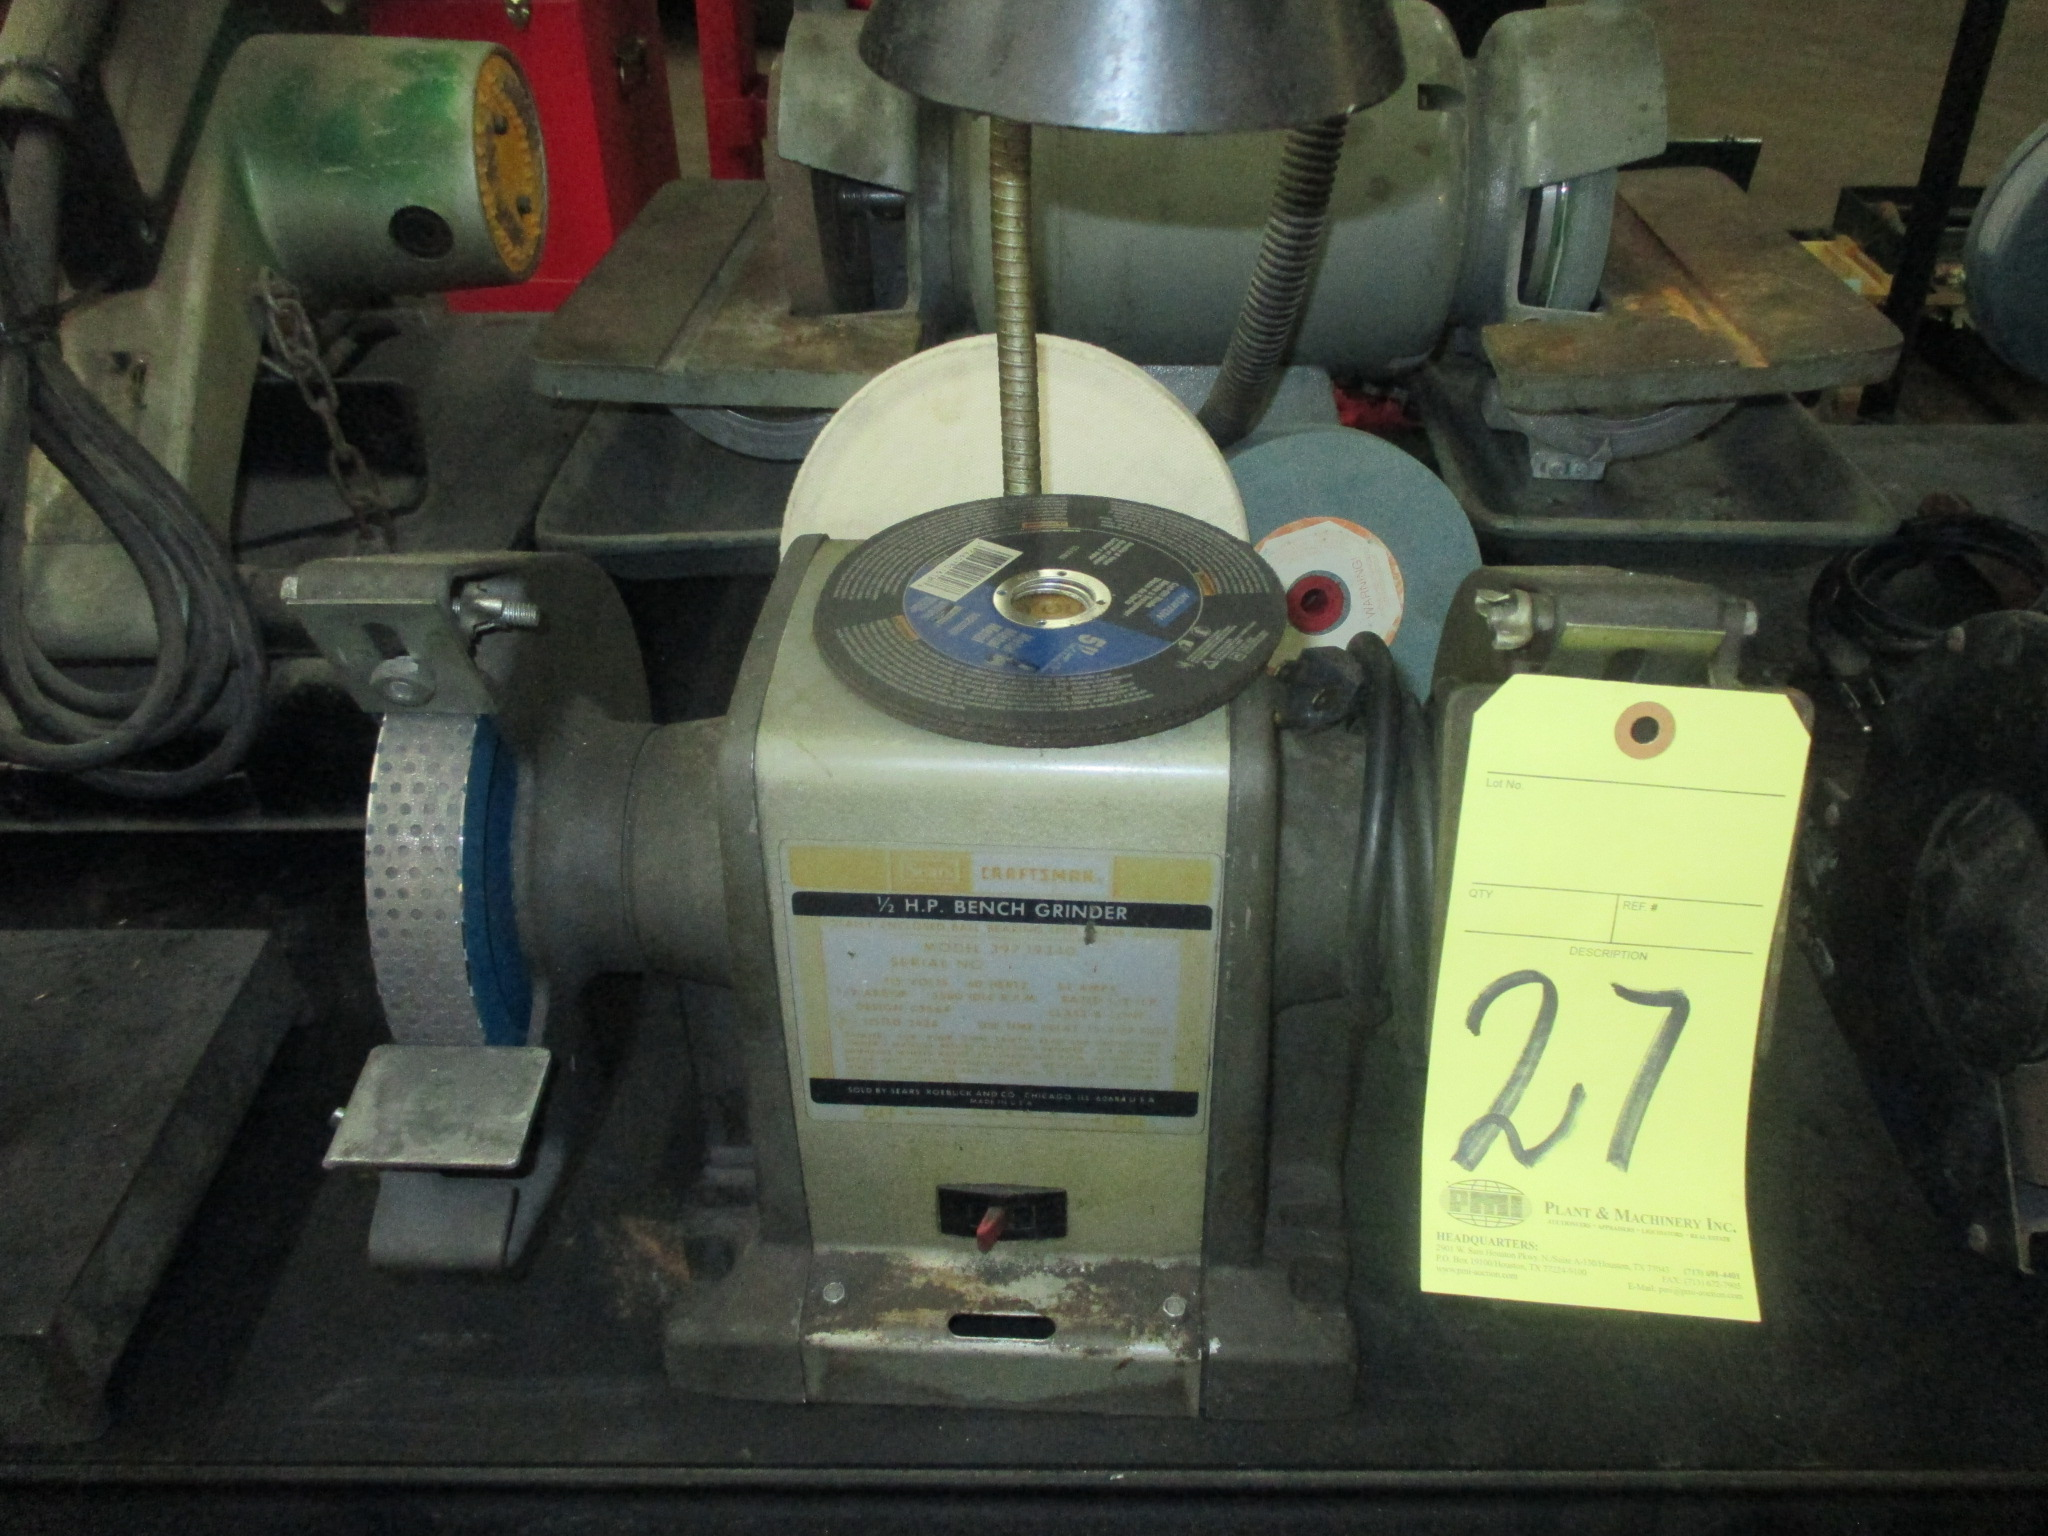 Lot 27 - DOUBLE END BENCH GRINDER, CRAFTSMAN, 1/2 HP